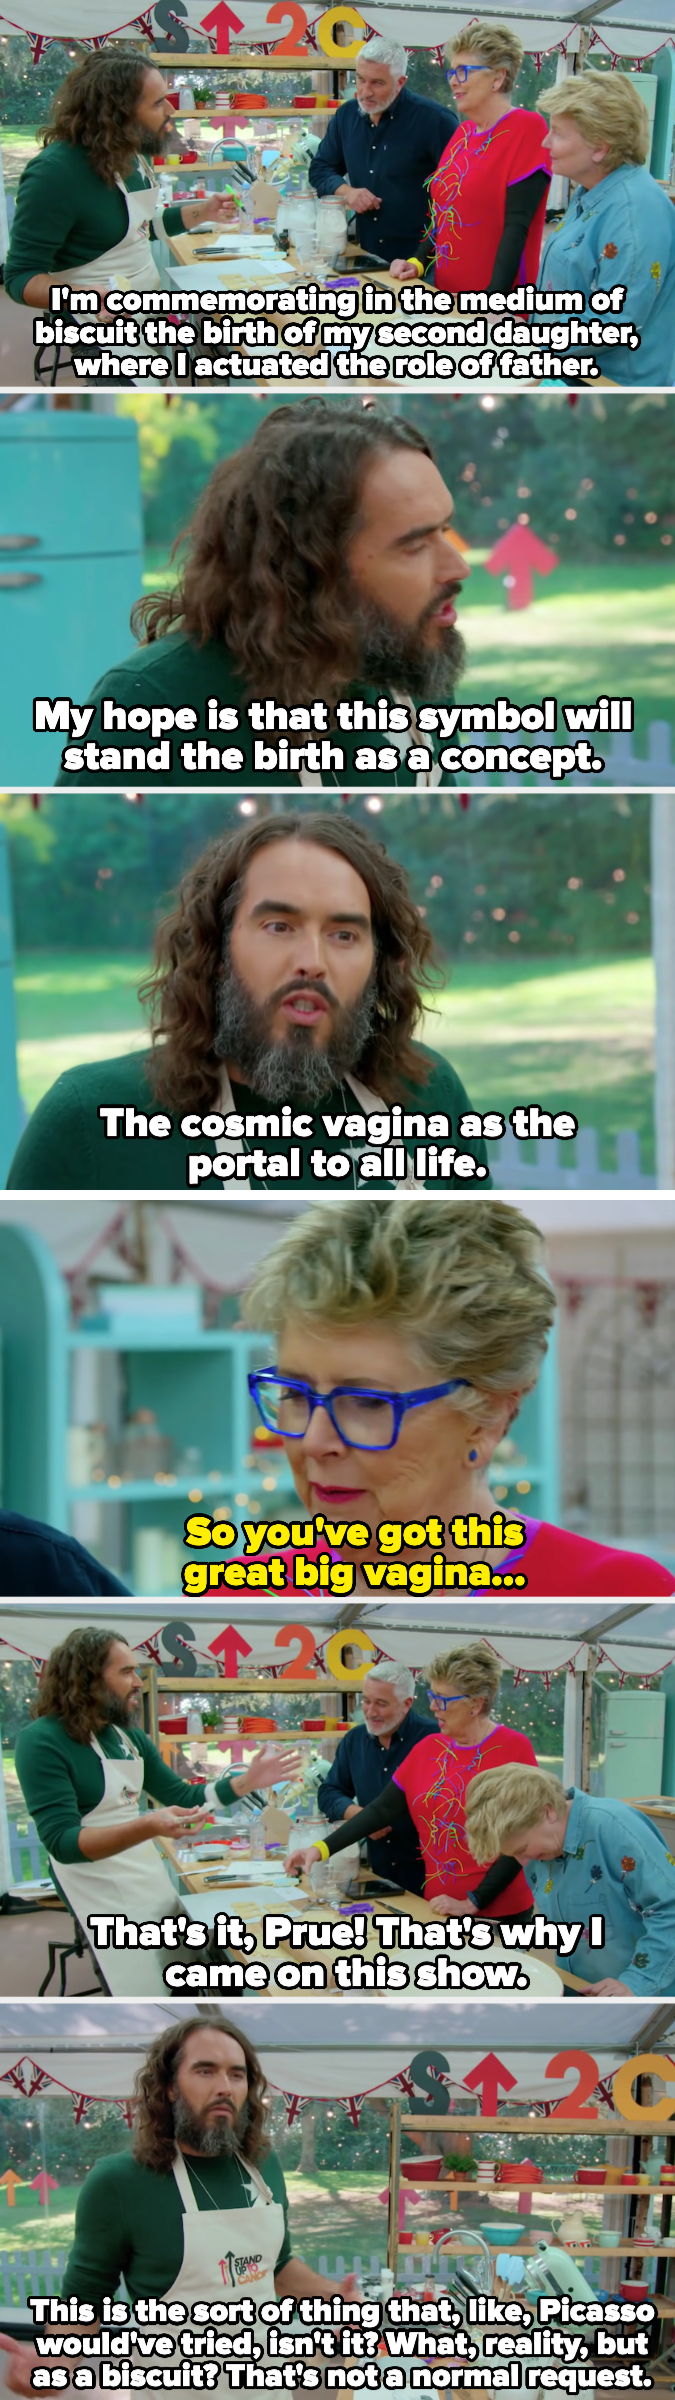 """Russell pitches his showstopper, which is based on the birth of his second daughter, and Prue responds, """"so you've got this great big vagina"""""""